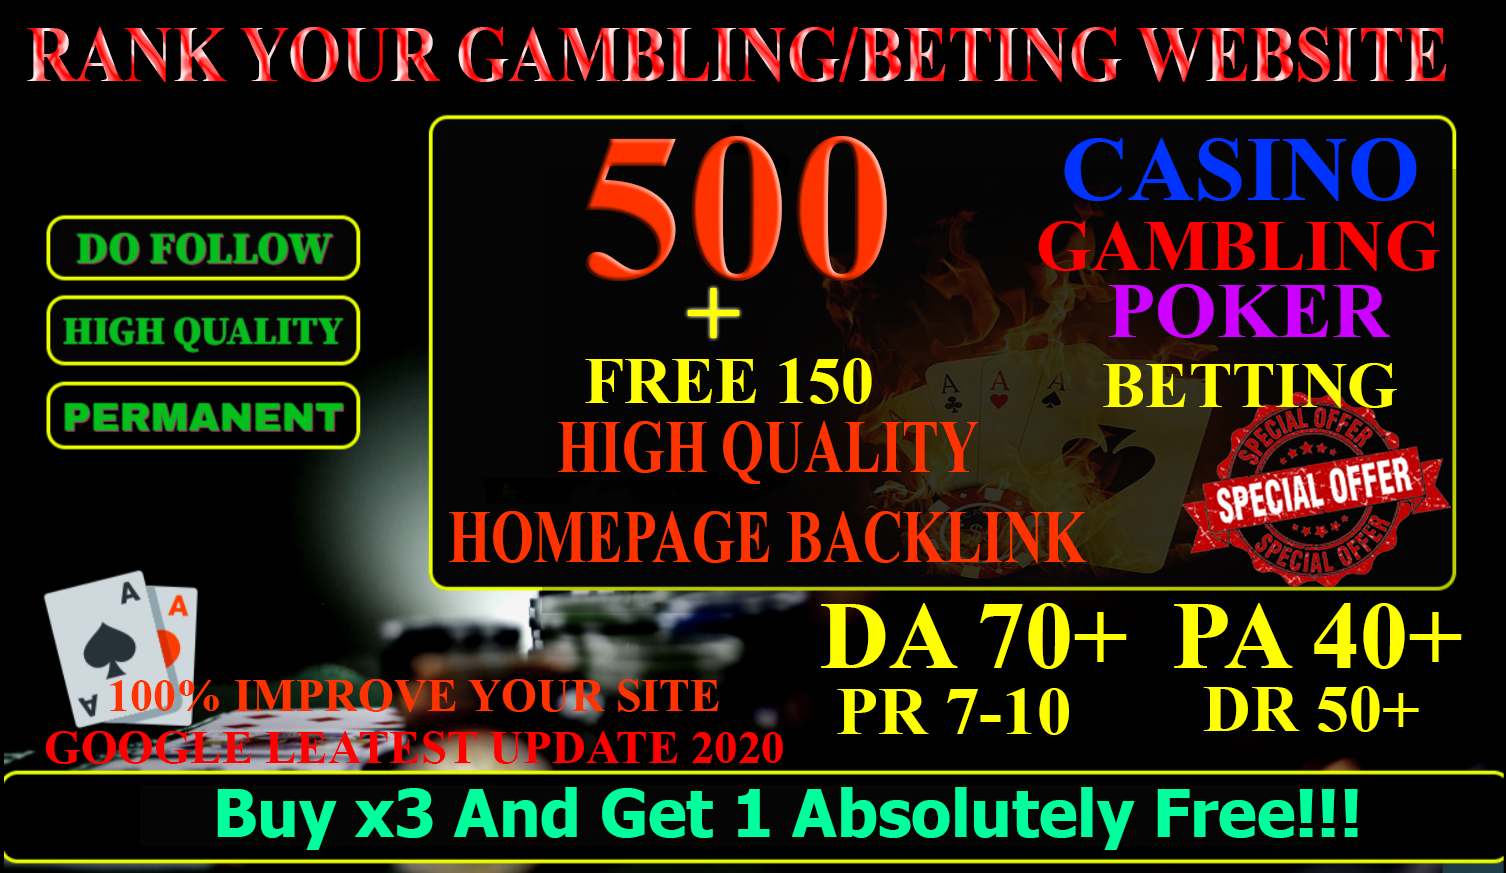 500 High Quality Homepage Backlink Casino,  Poker,  Gambling BETTING DA70+ PA 40+ 100 DOFOLLOW